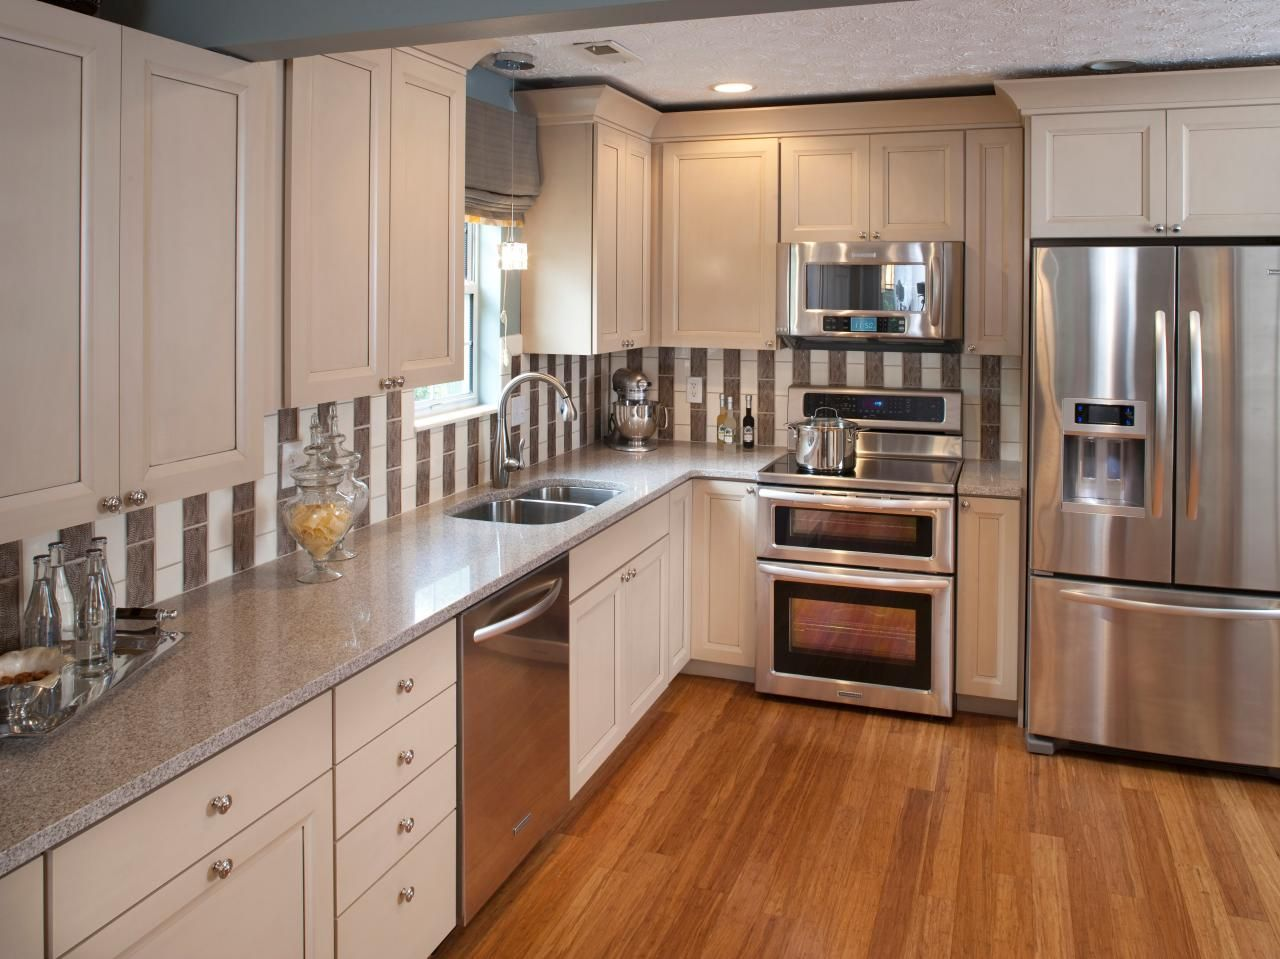 Kitchen Ideas With Stainless Steel Appliances Part - 46: Colors For Kitchen Cabinets With Stainless Steel Appliances - It Is A Fact  That Our Dispositions Are Influenced By Colour.